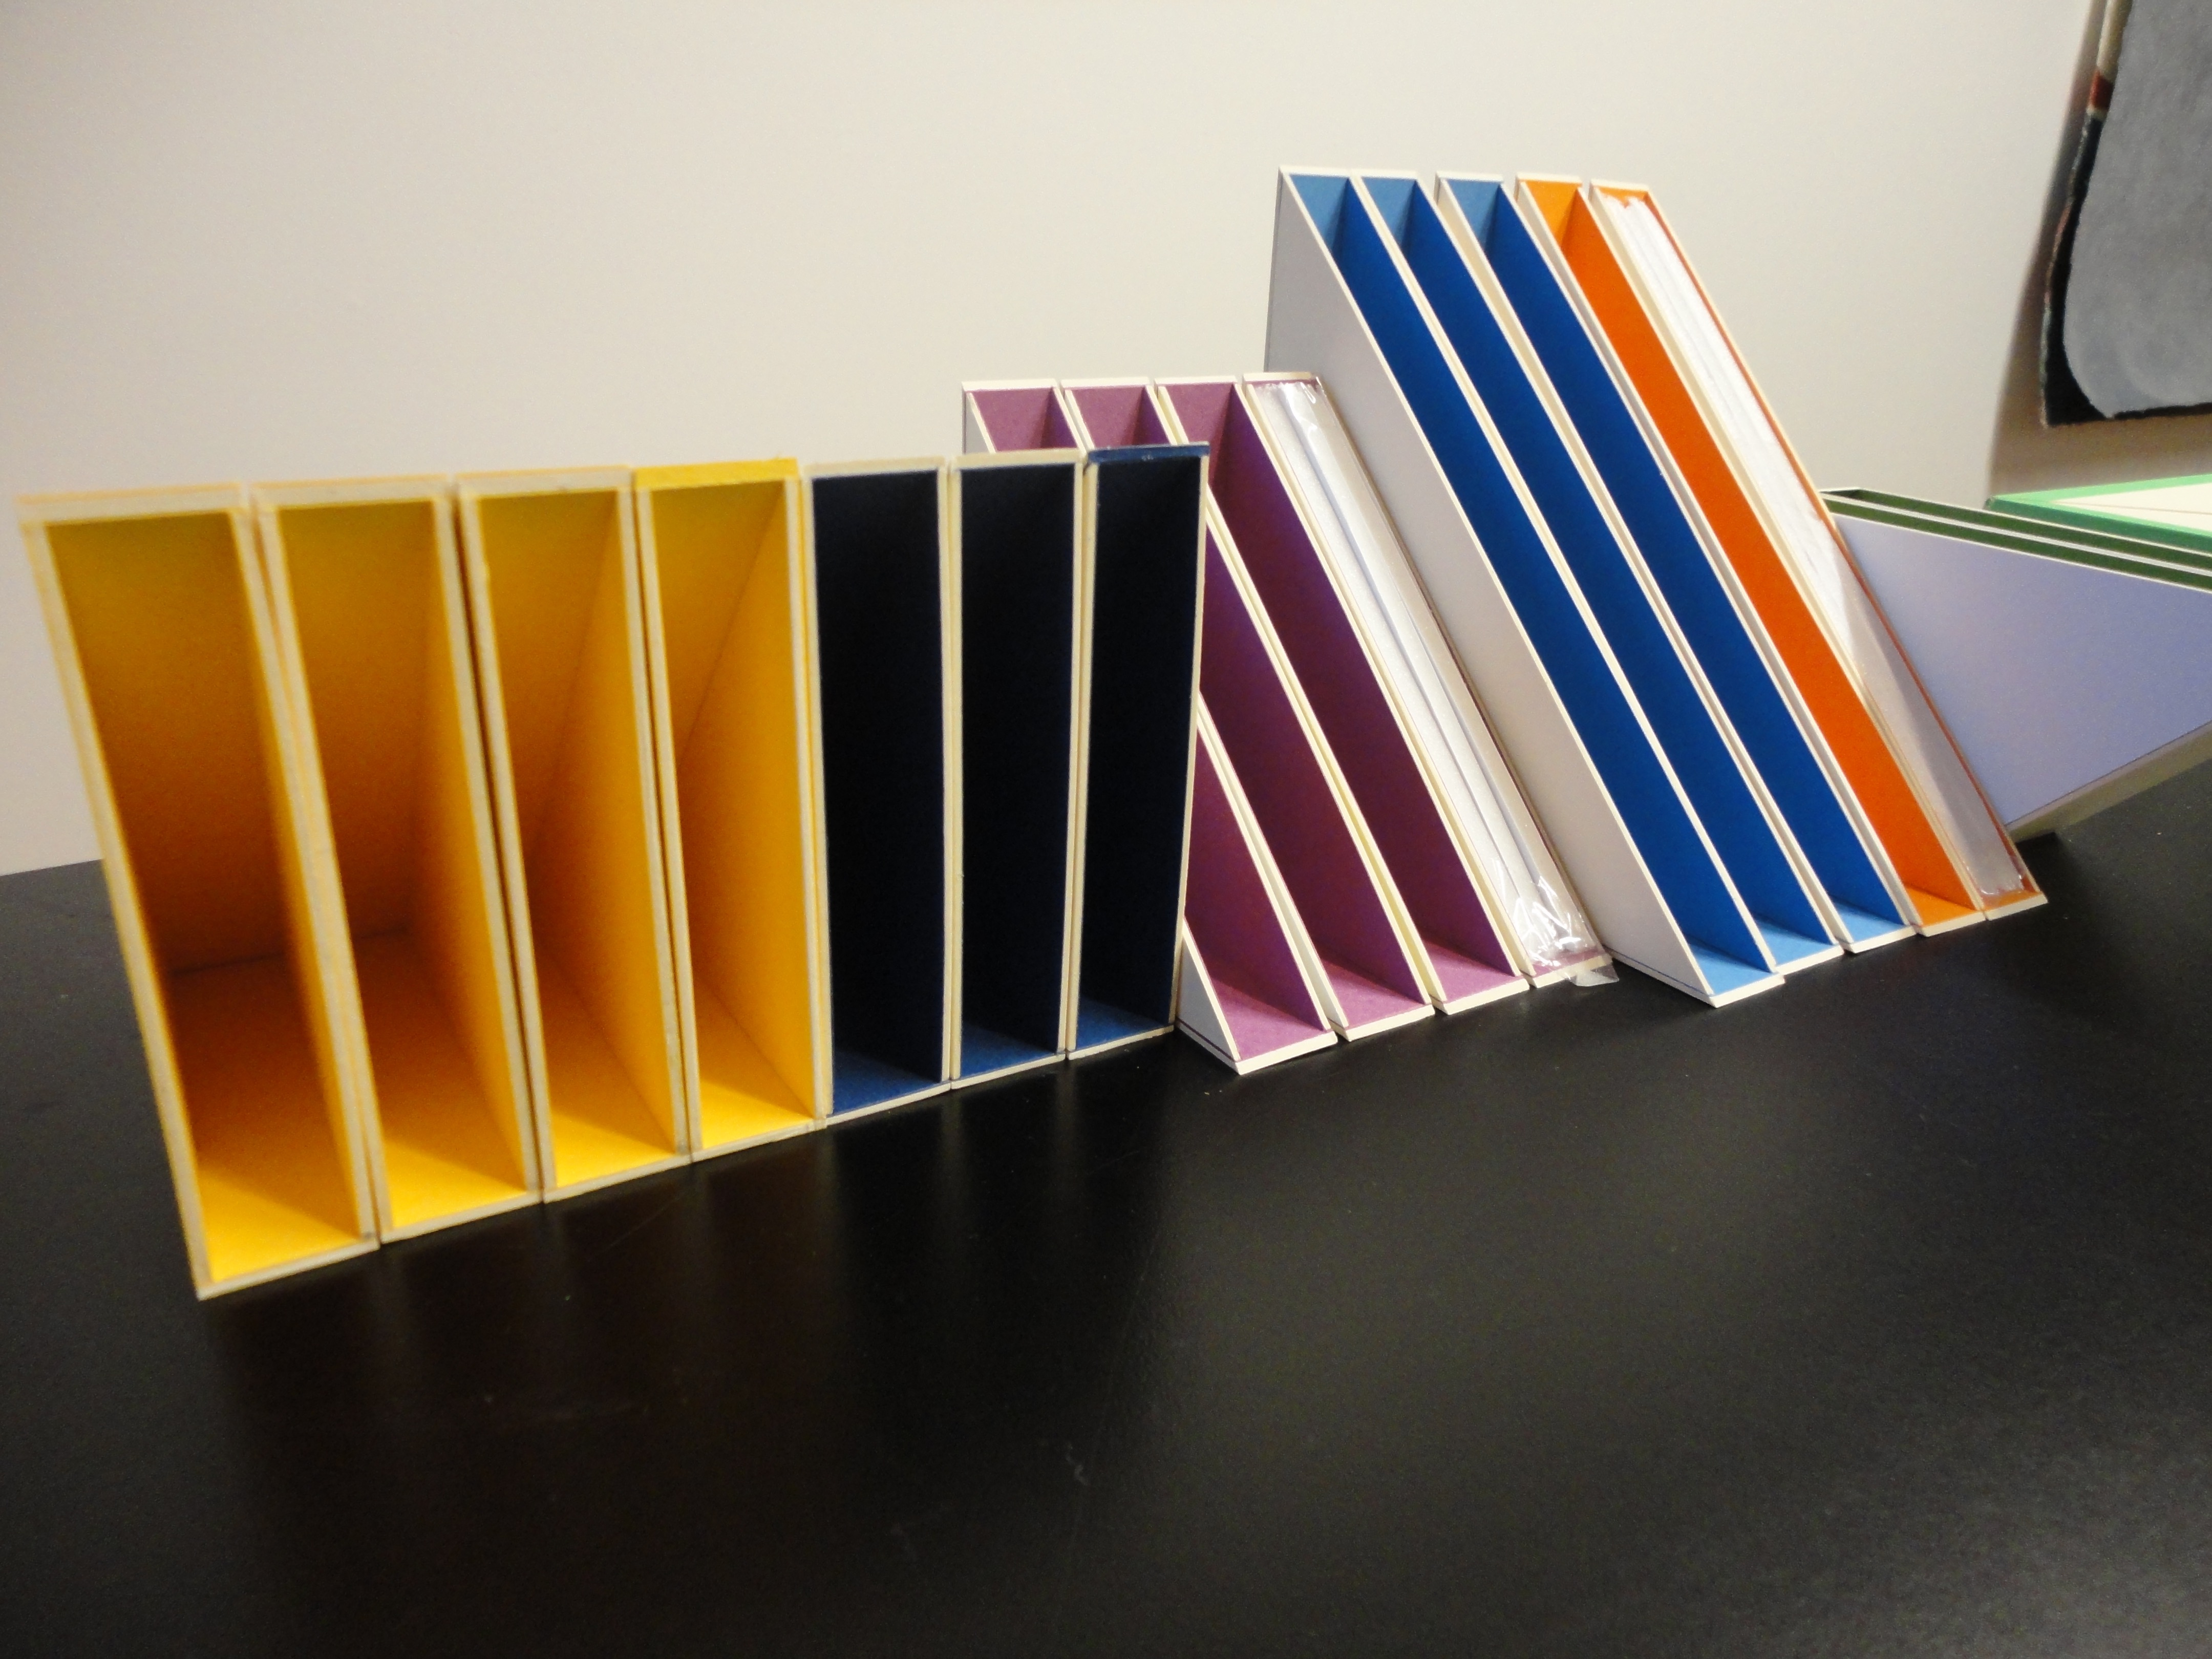 Handmade slipcases that have been lined with paper that matches the colour of the bookcloth that will cover them.